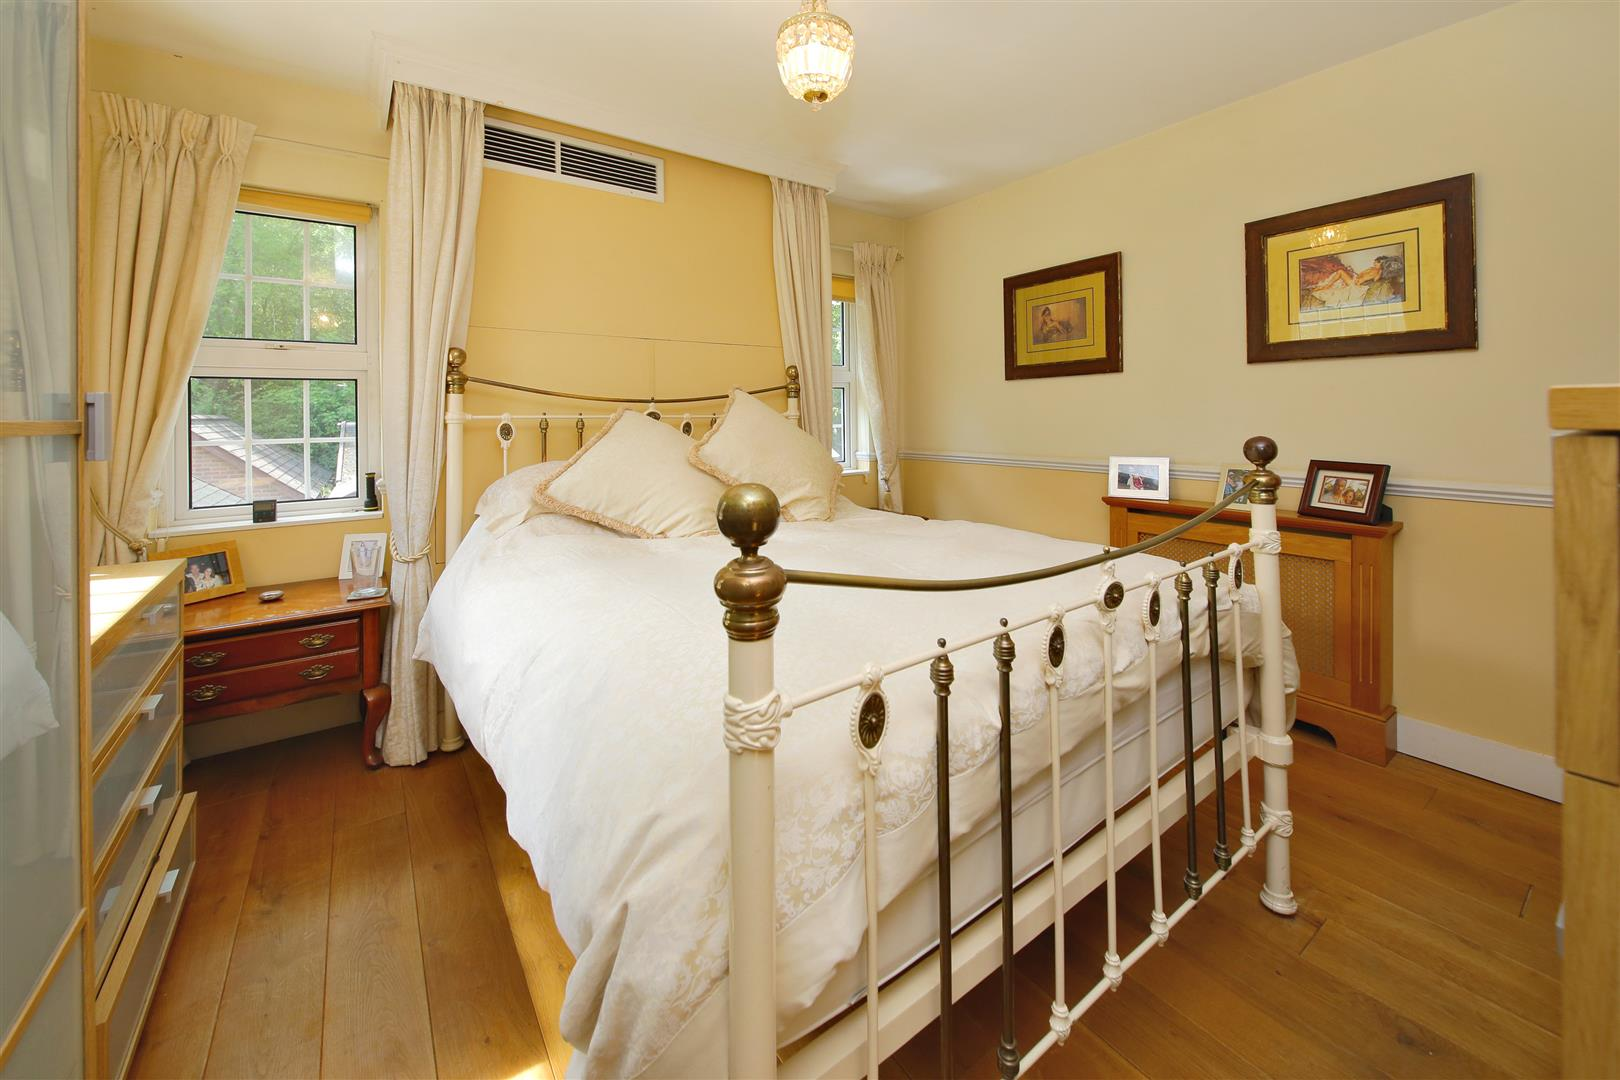 3 bed for sale in Station Road, Bricket Wood - (Property Image 3)